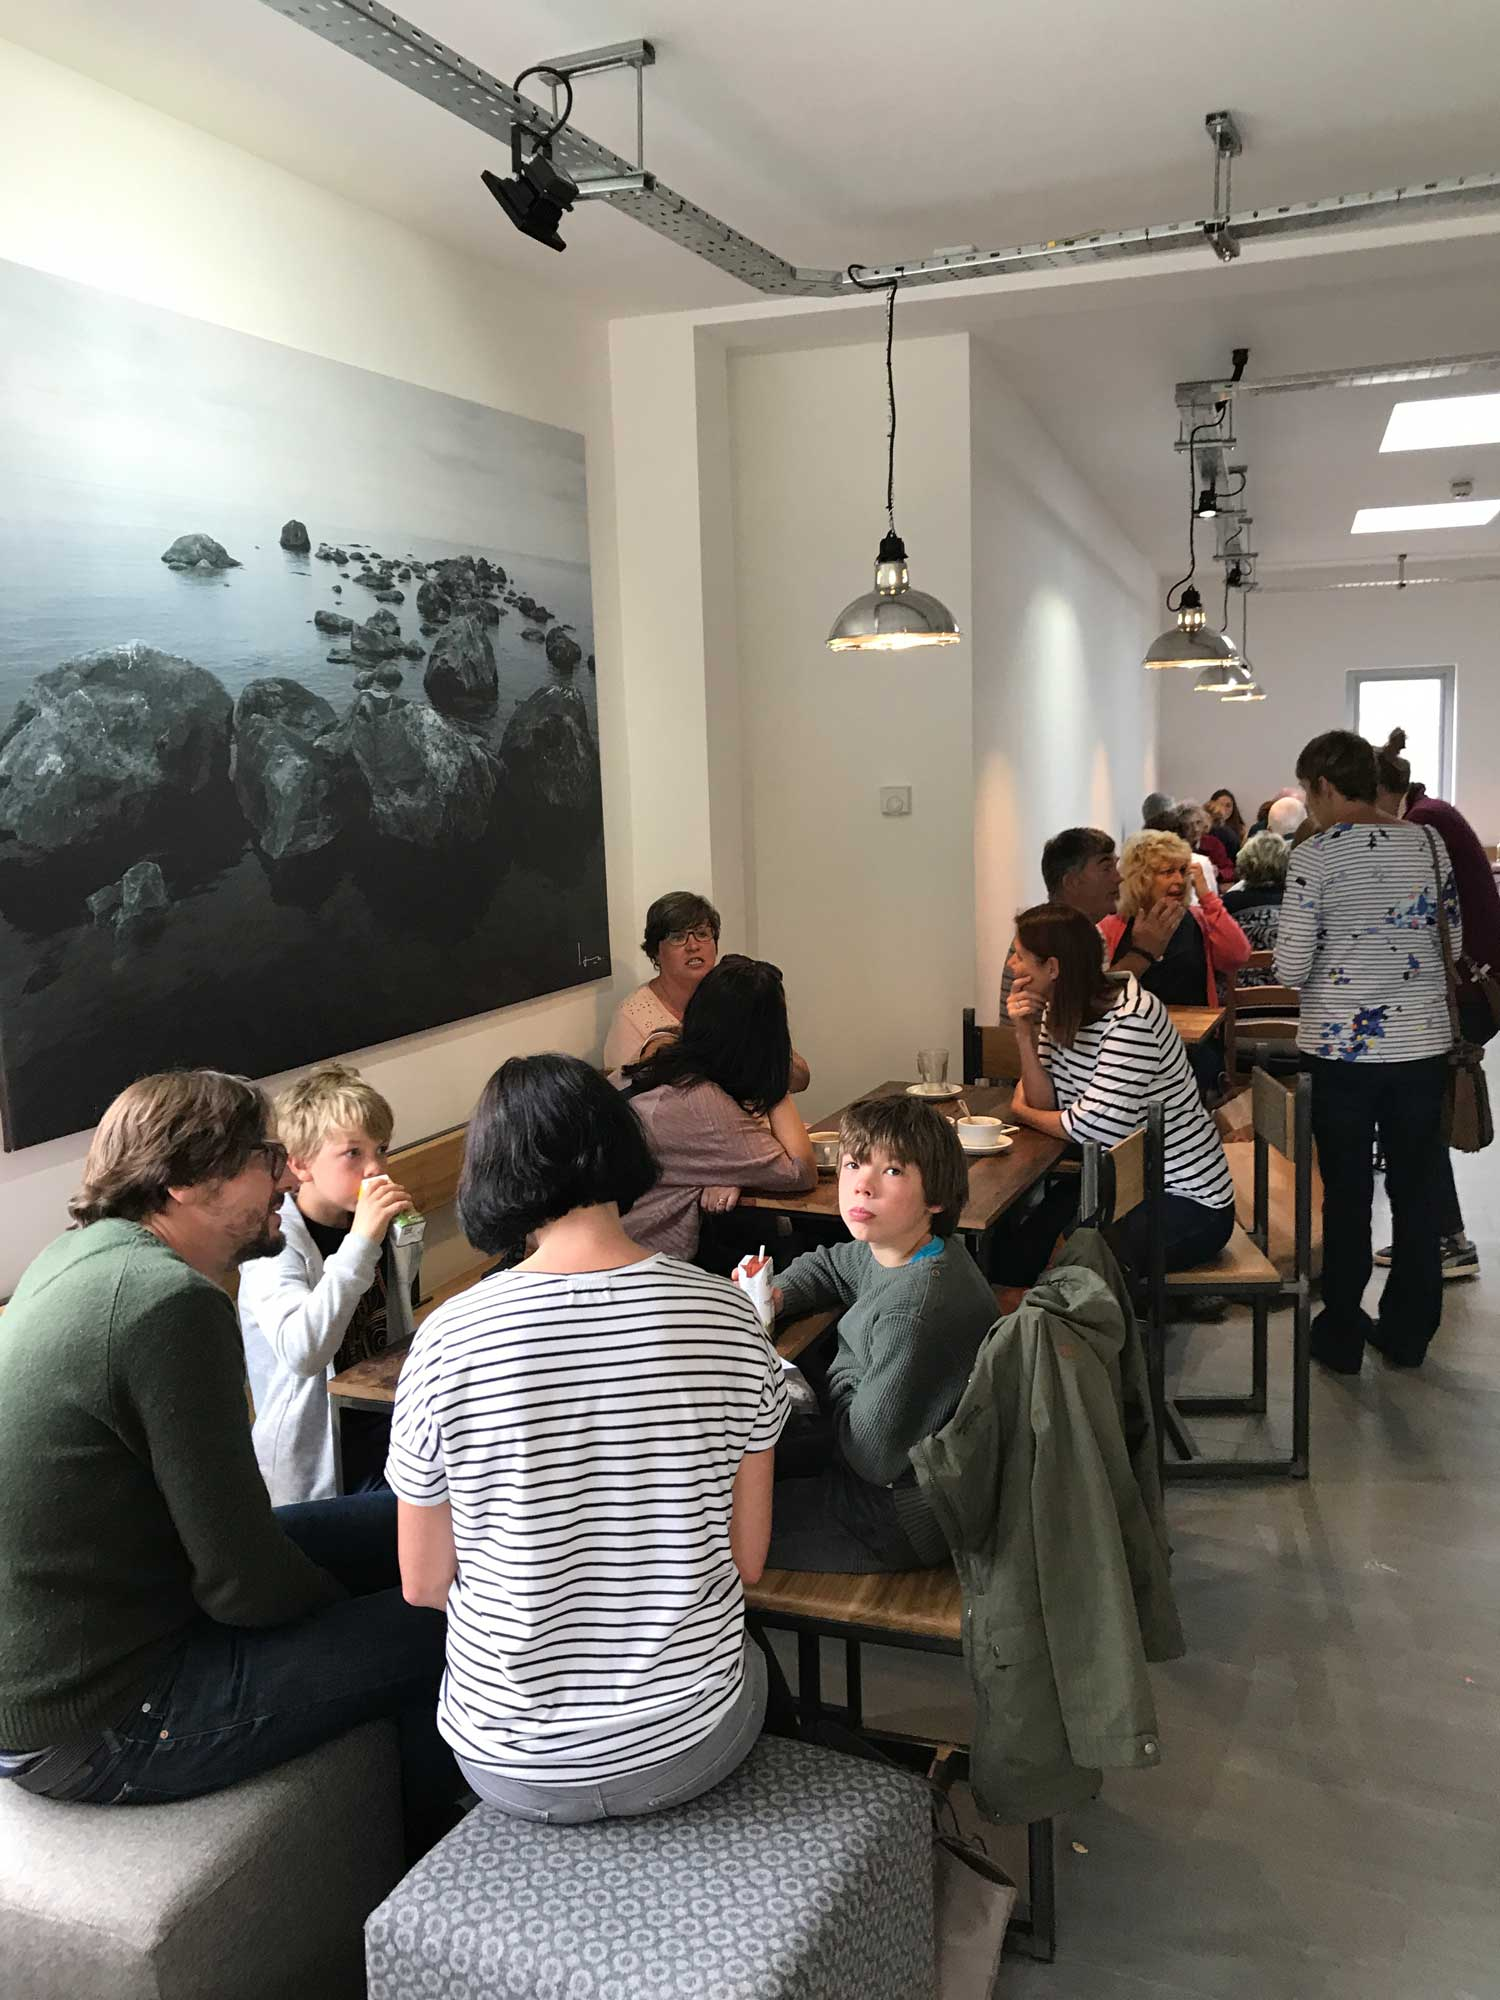 shoppers relaxing in the new cafe